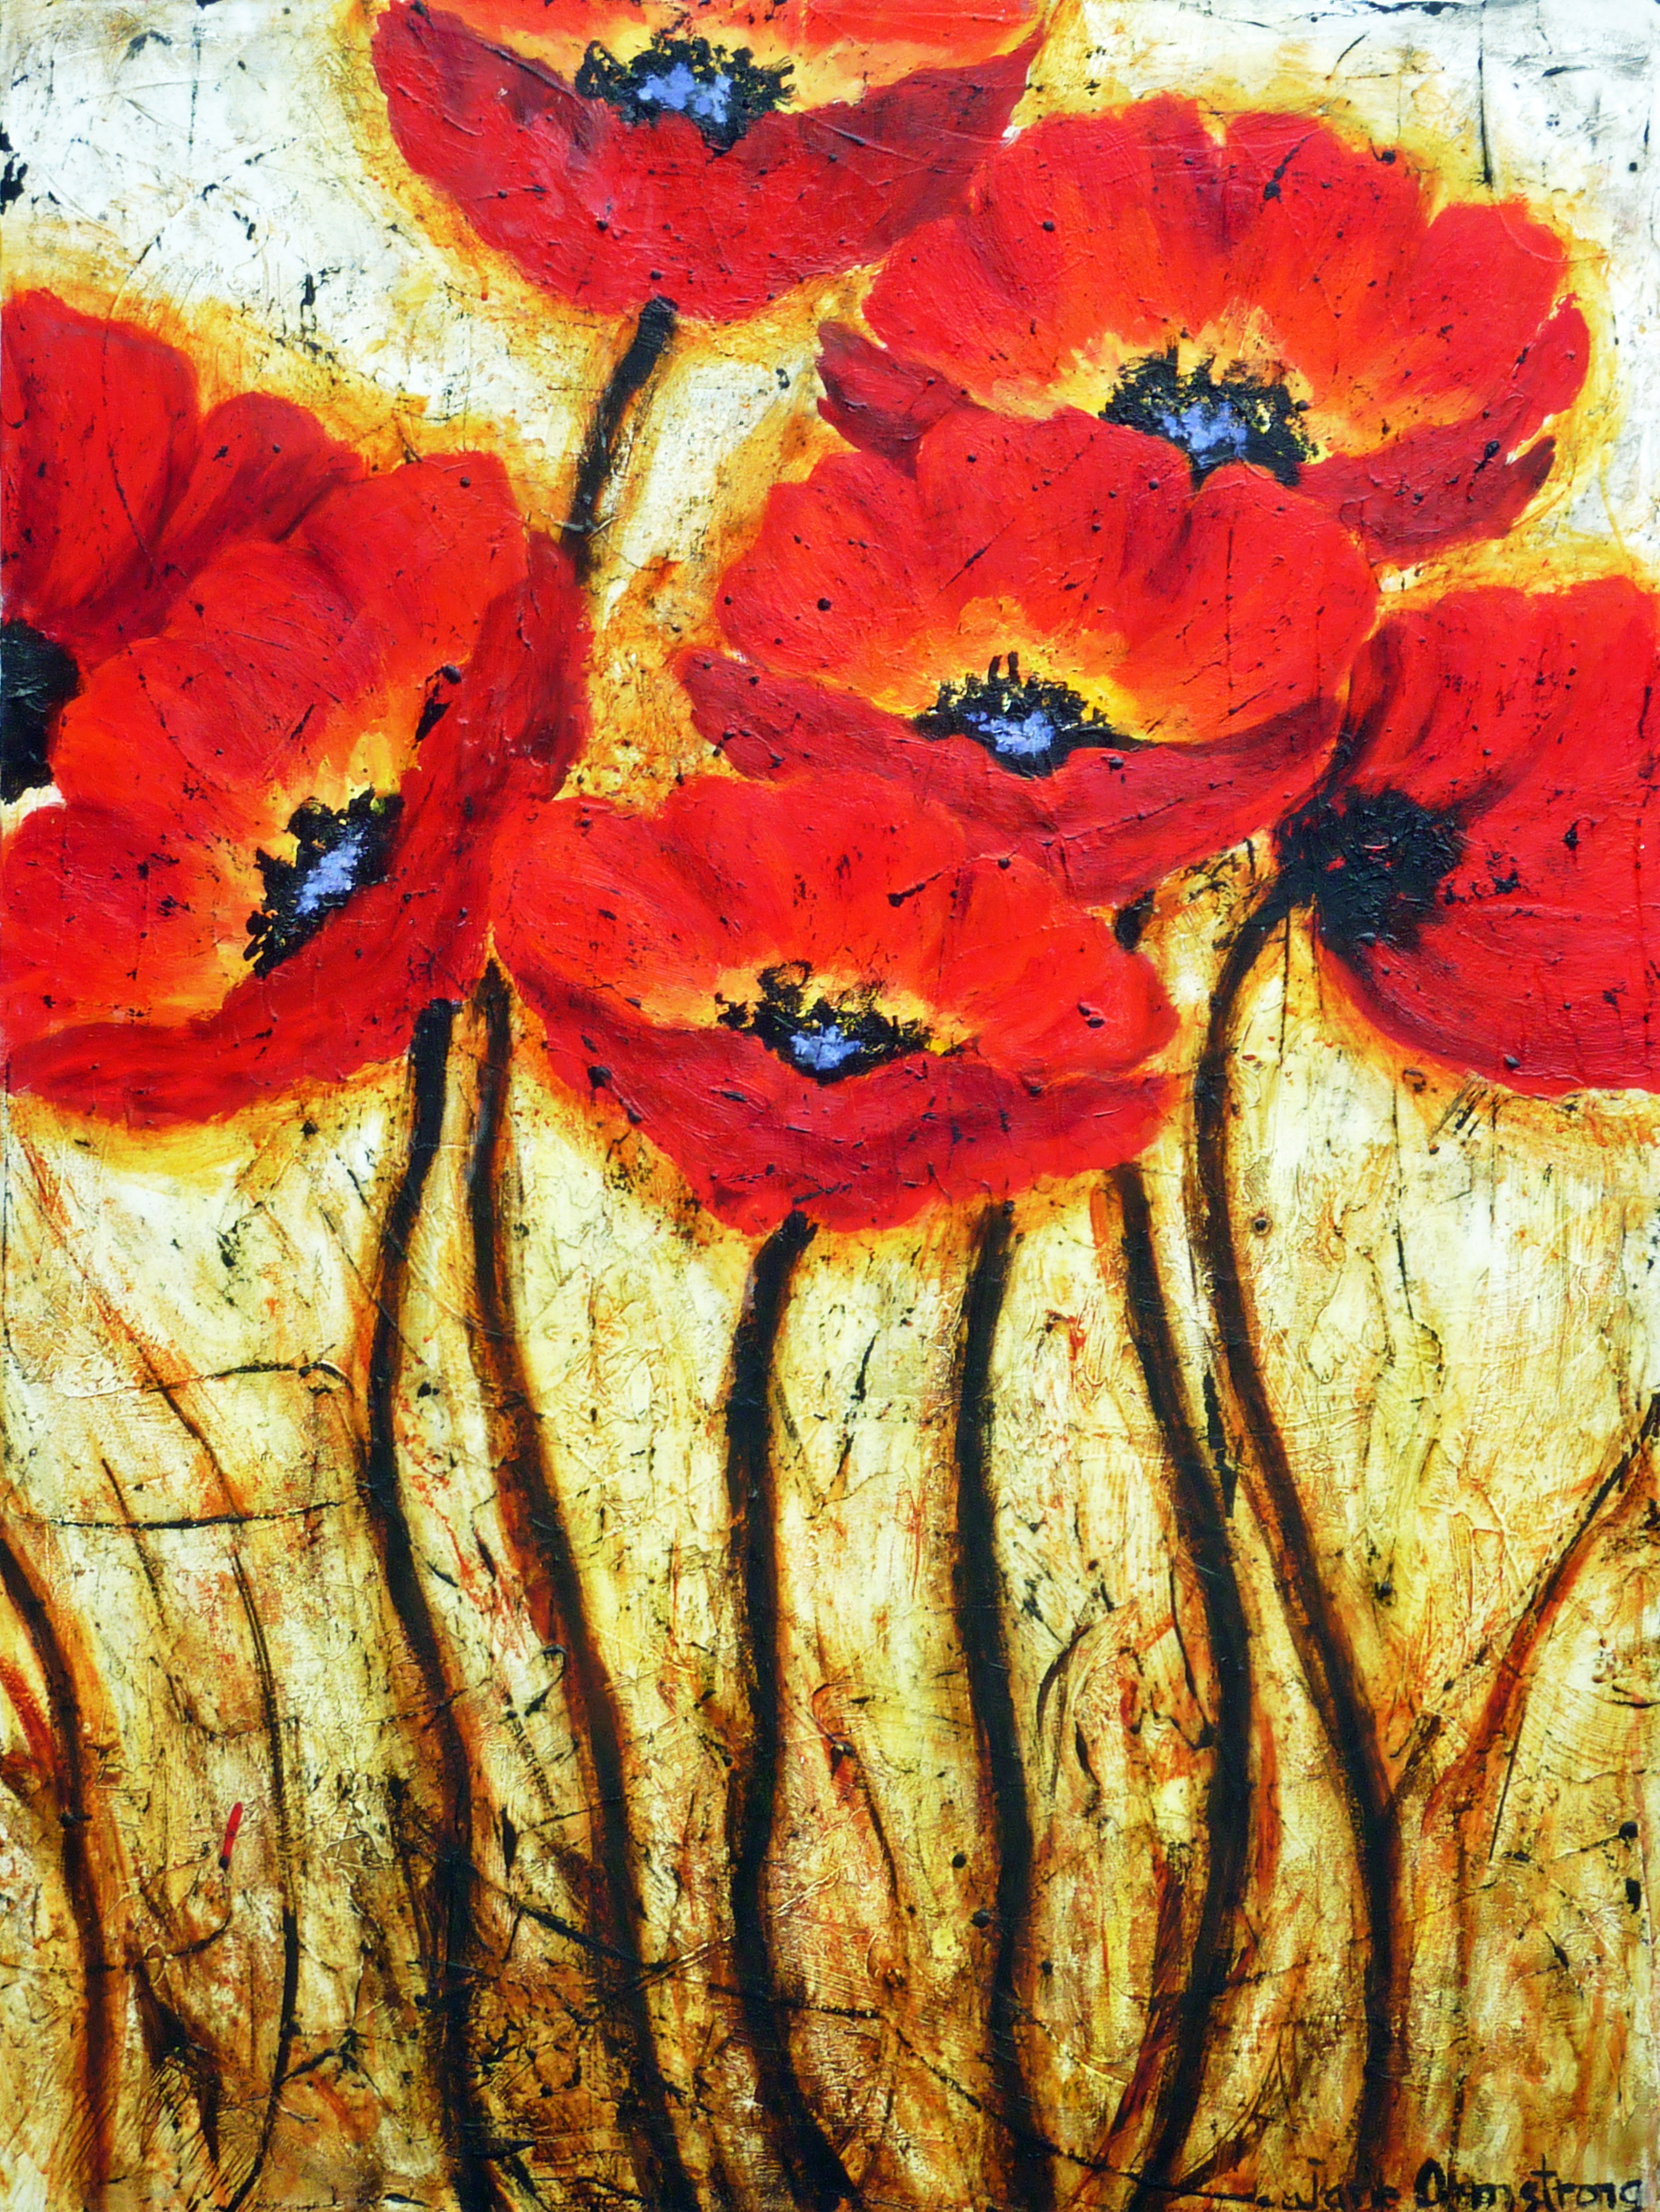 Dance of the Poppies 40 x 30 Acrylic